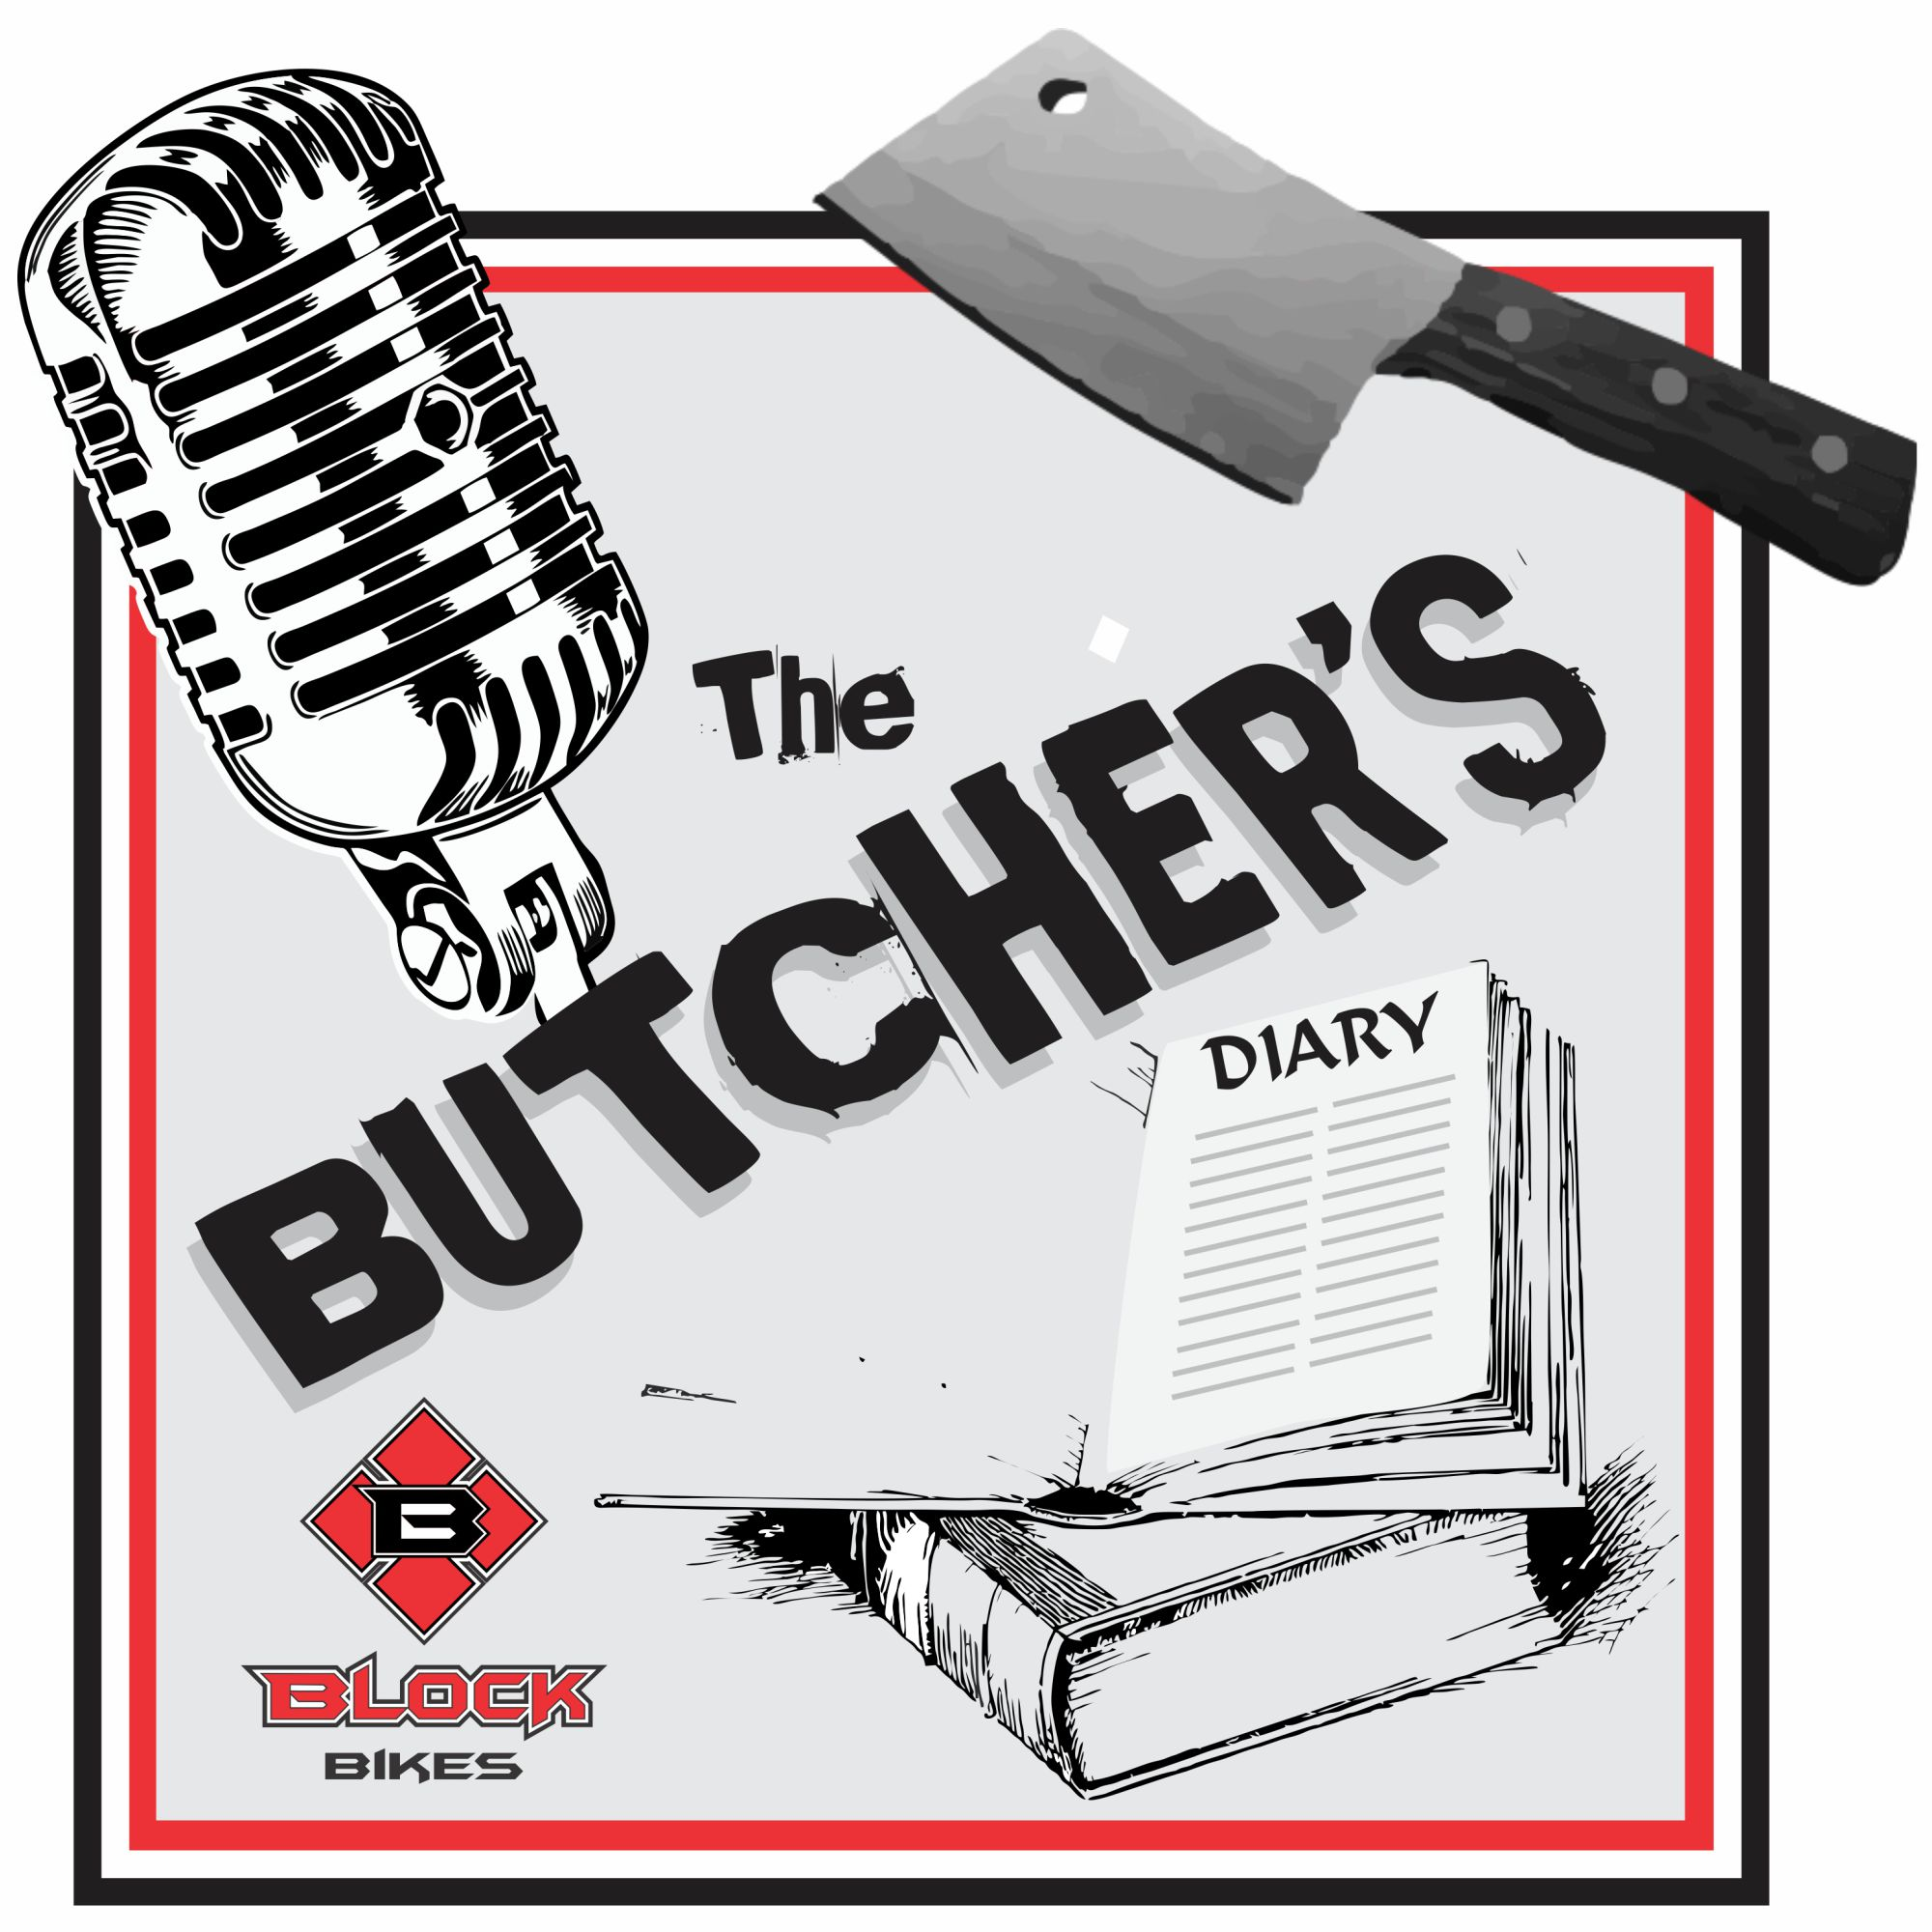 The Butcher's Diary